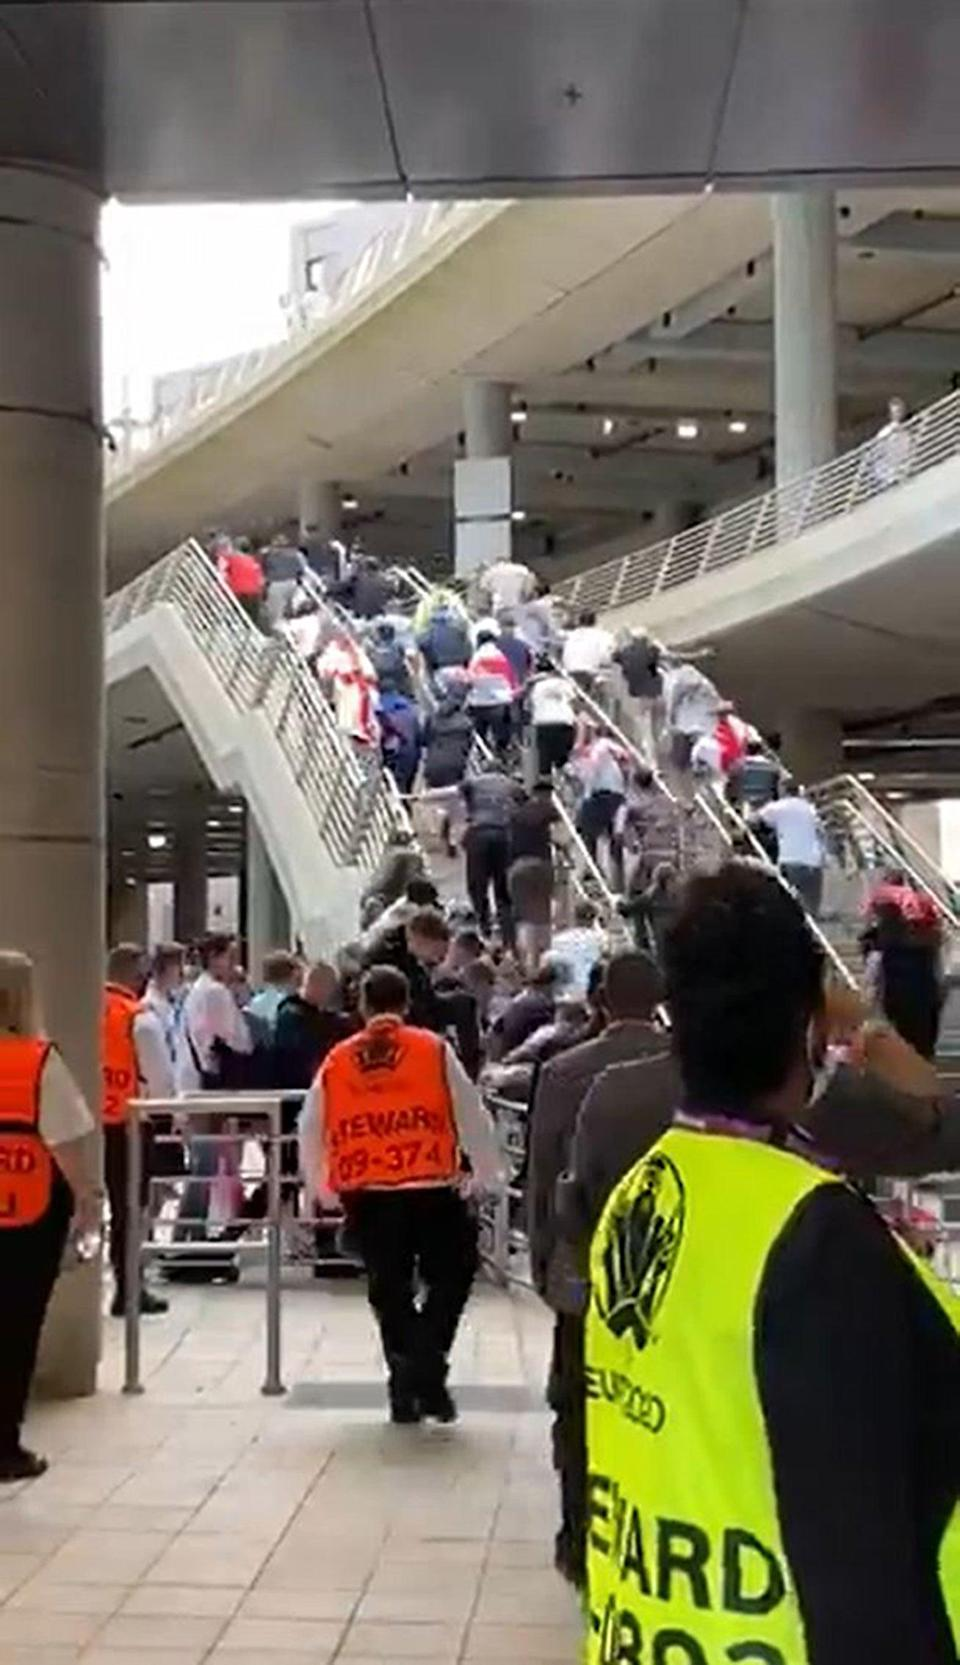 People running up steps as they try to force their way into Wembley Stadium (Michelle Owen/ITV Football/PA) (PA Media)